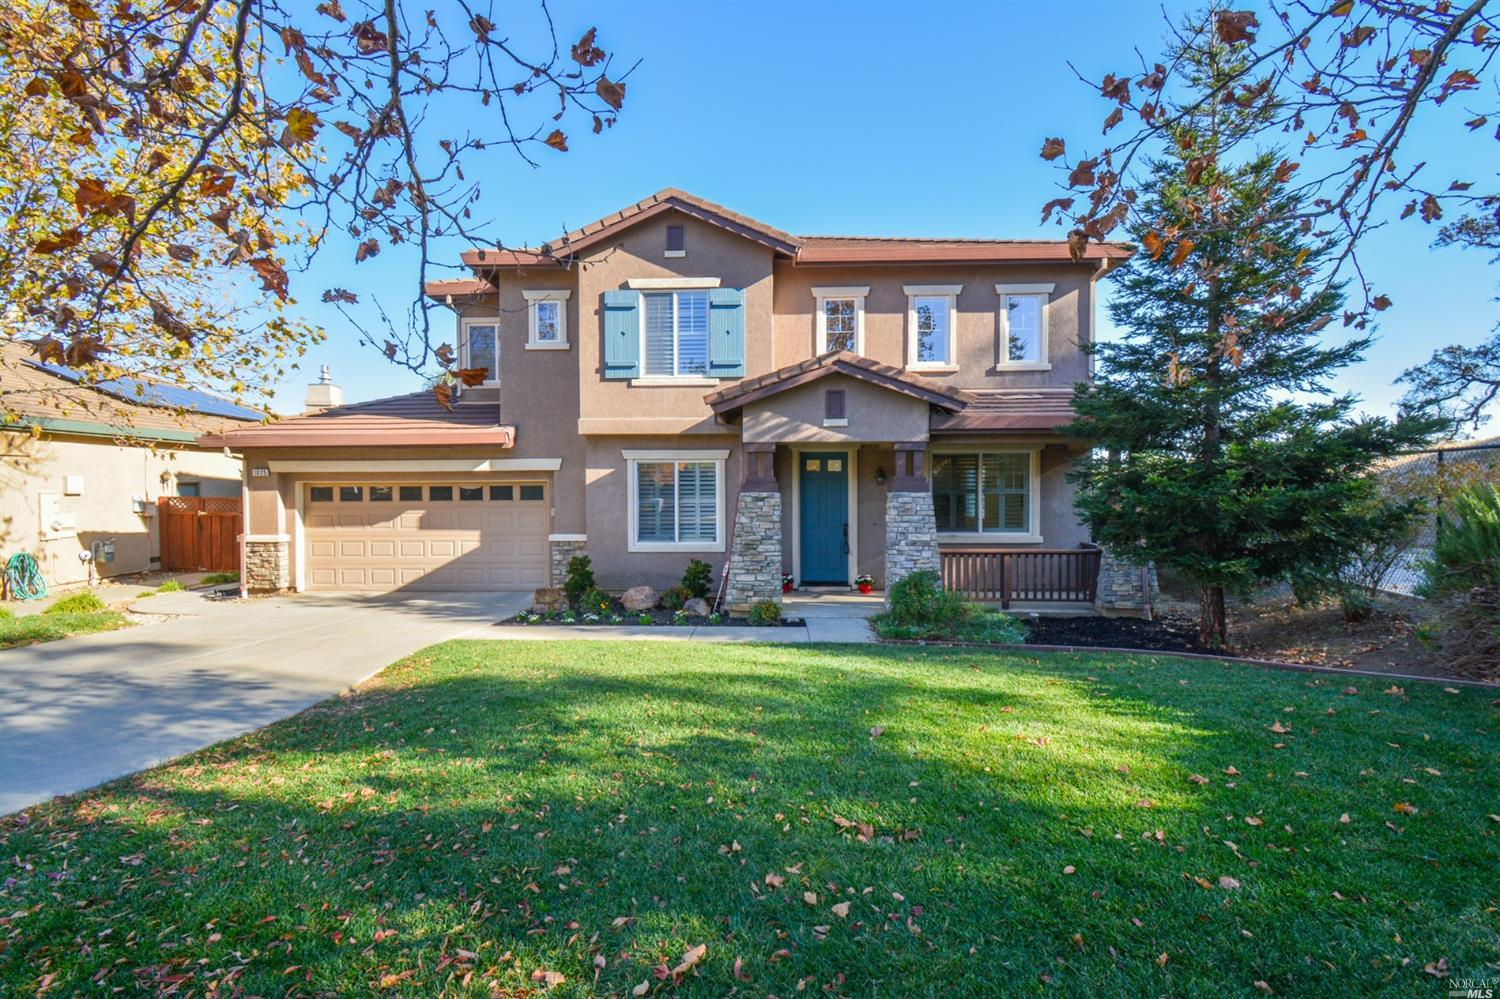 This stunning showcase home is located in a quiet cul-de-sac with beautiful views of majestic oak tr